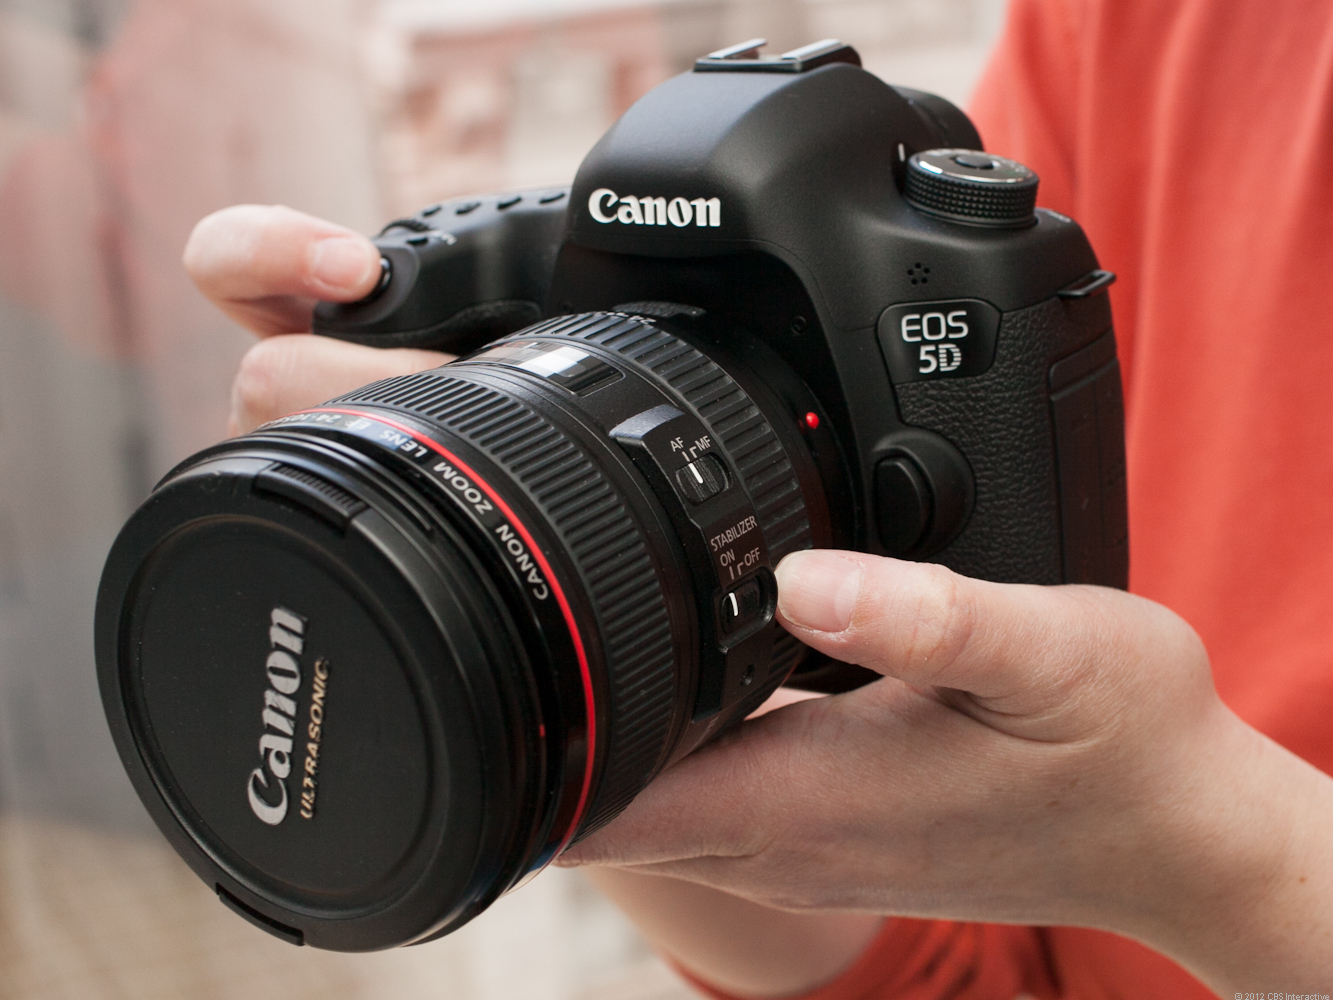 Canon EOS 5D Mark III (with 24-105mm lens)